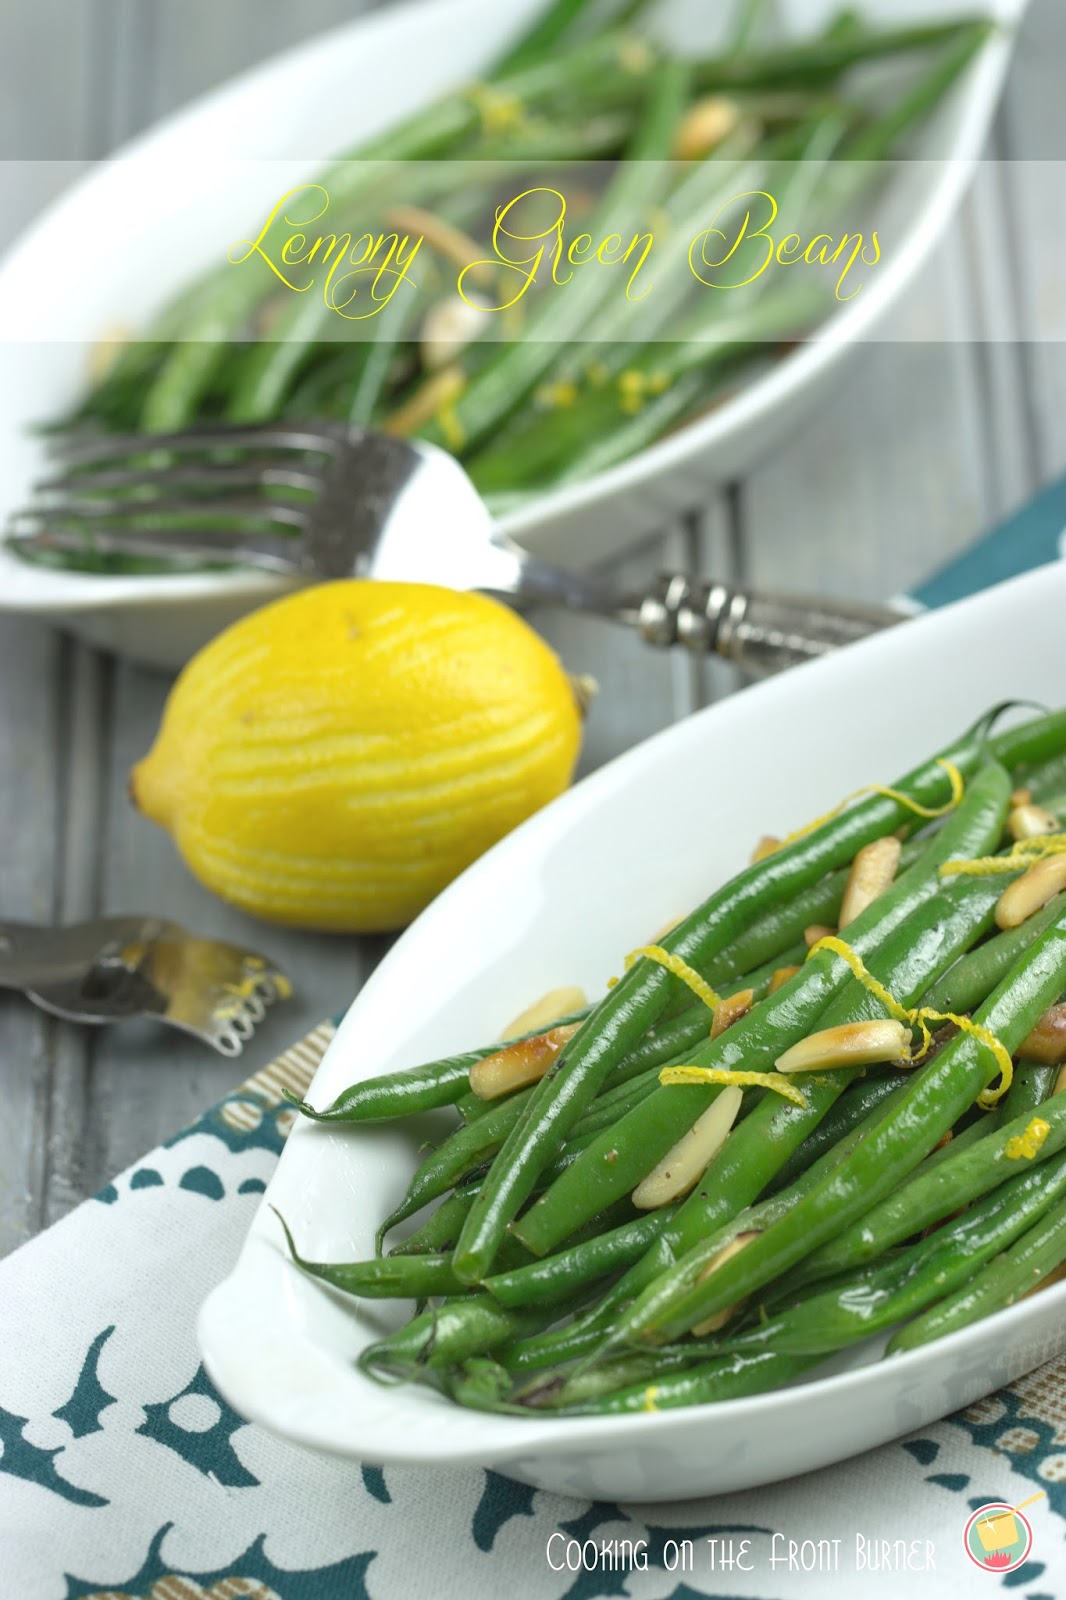 Lemony Green Beans | Cooking on the Front Burner